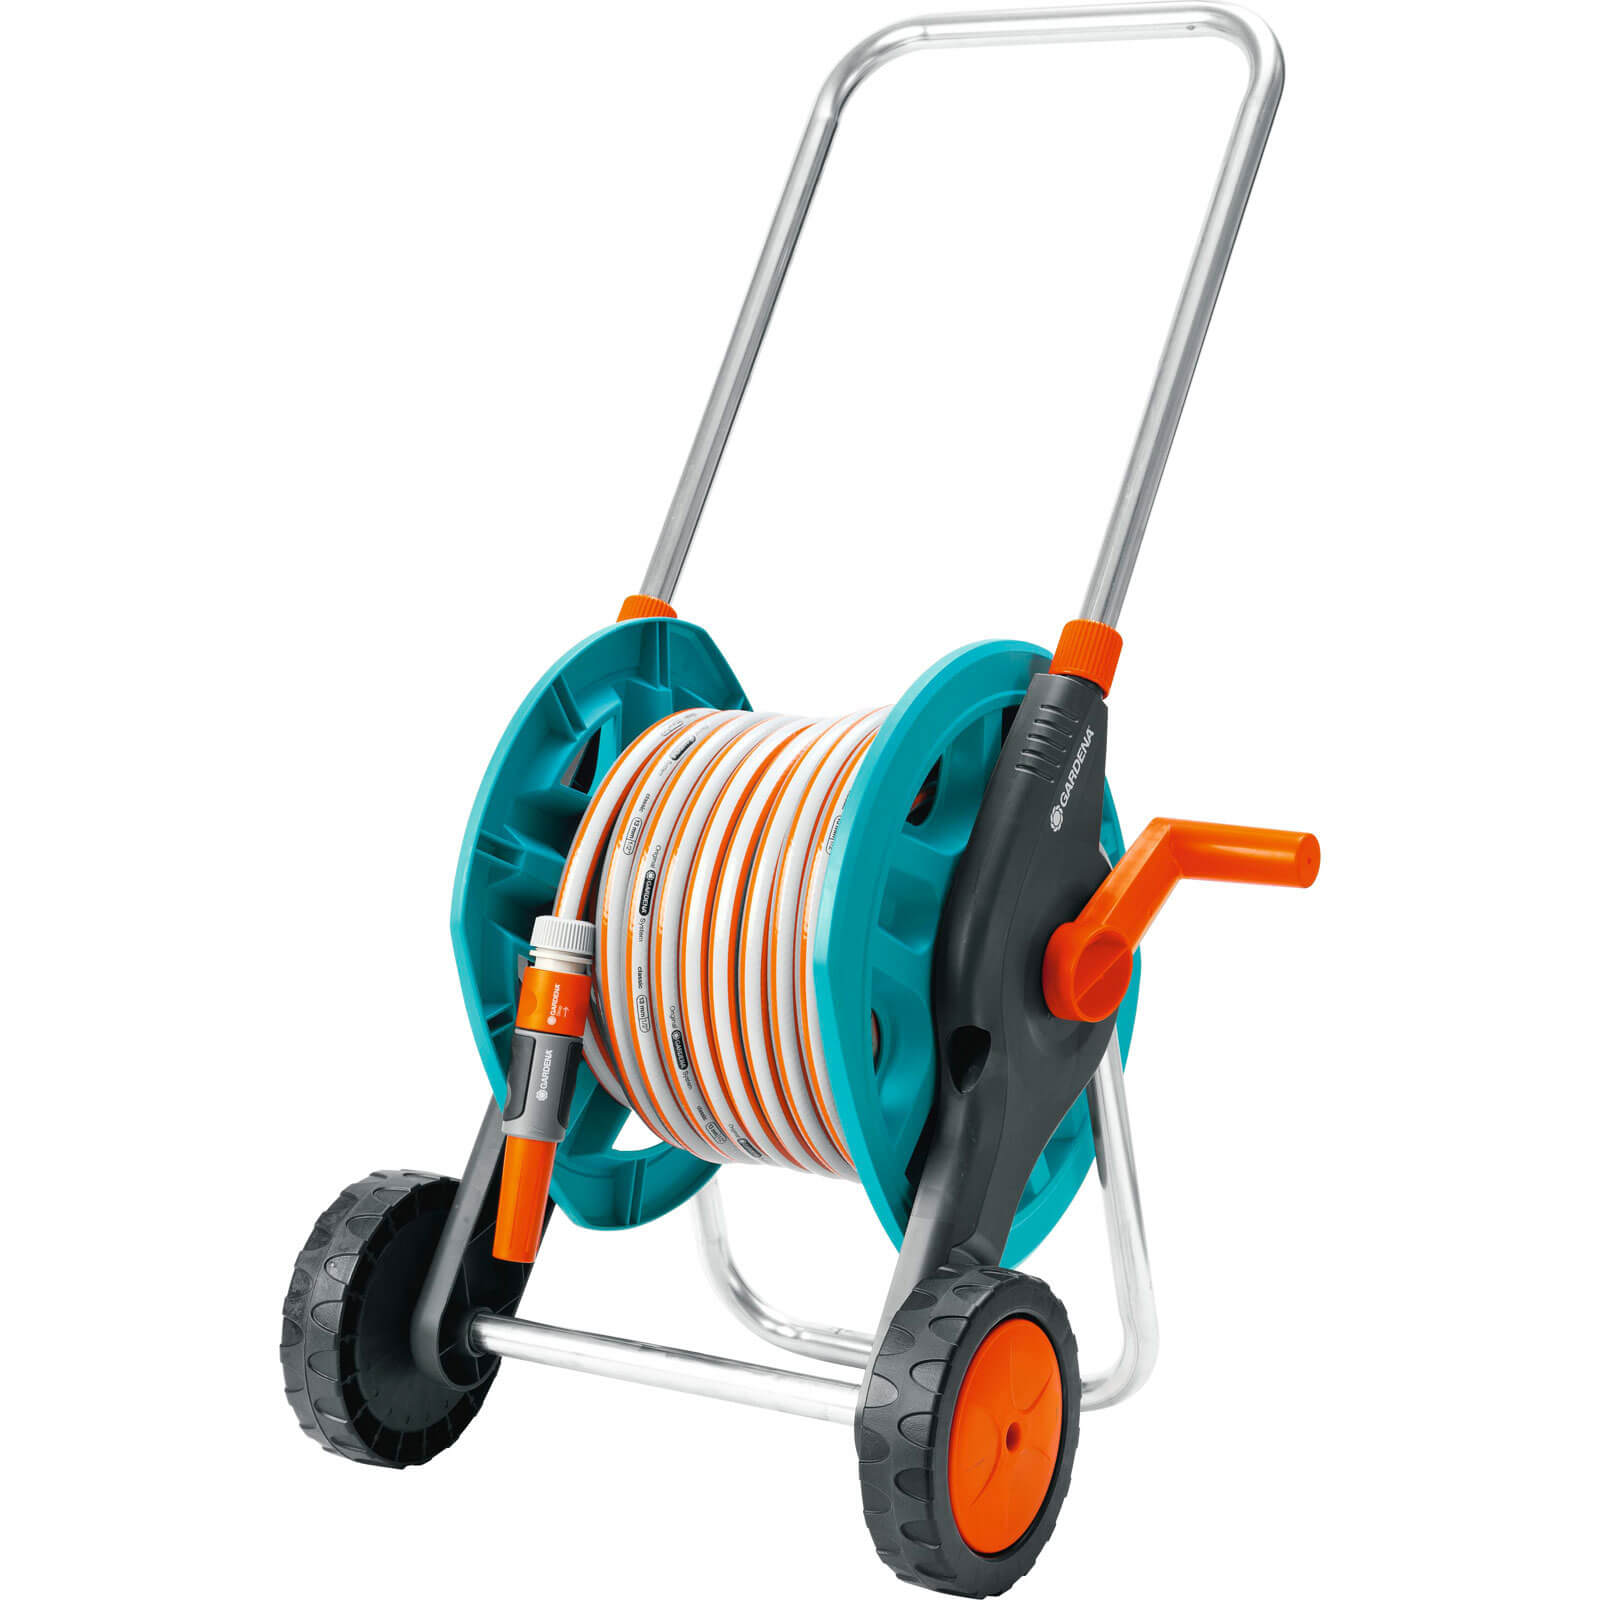 Gardena 30m Folding Compact Hose Cart with 30m Classic Hose Pipe